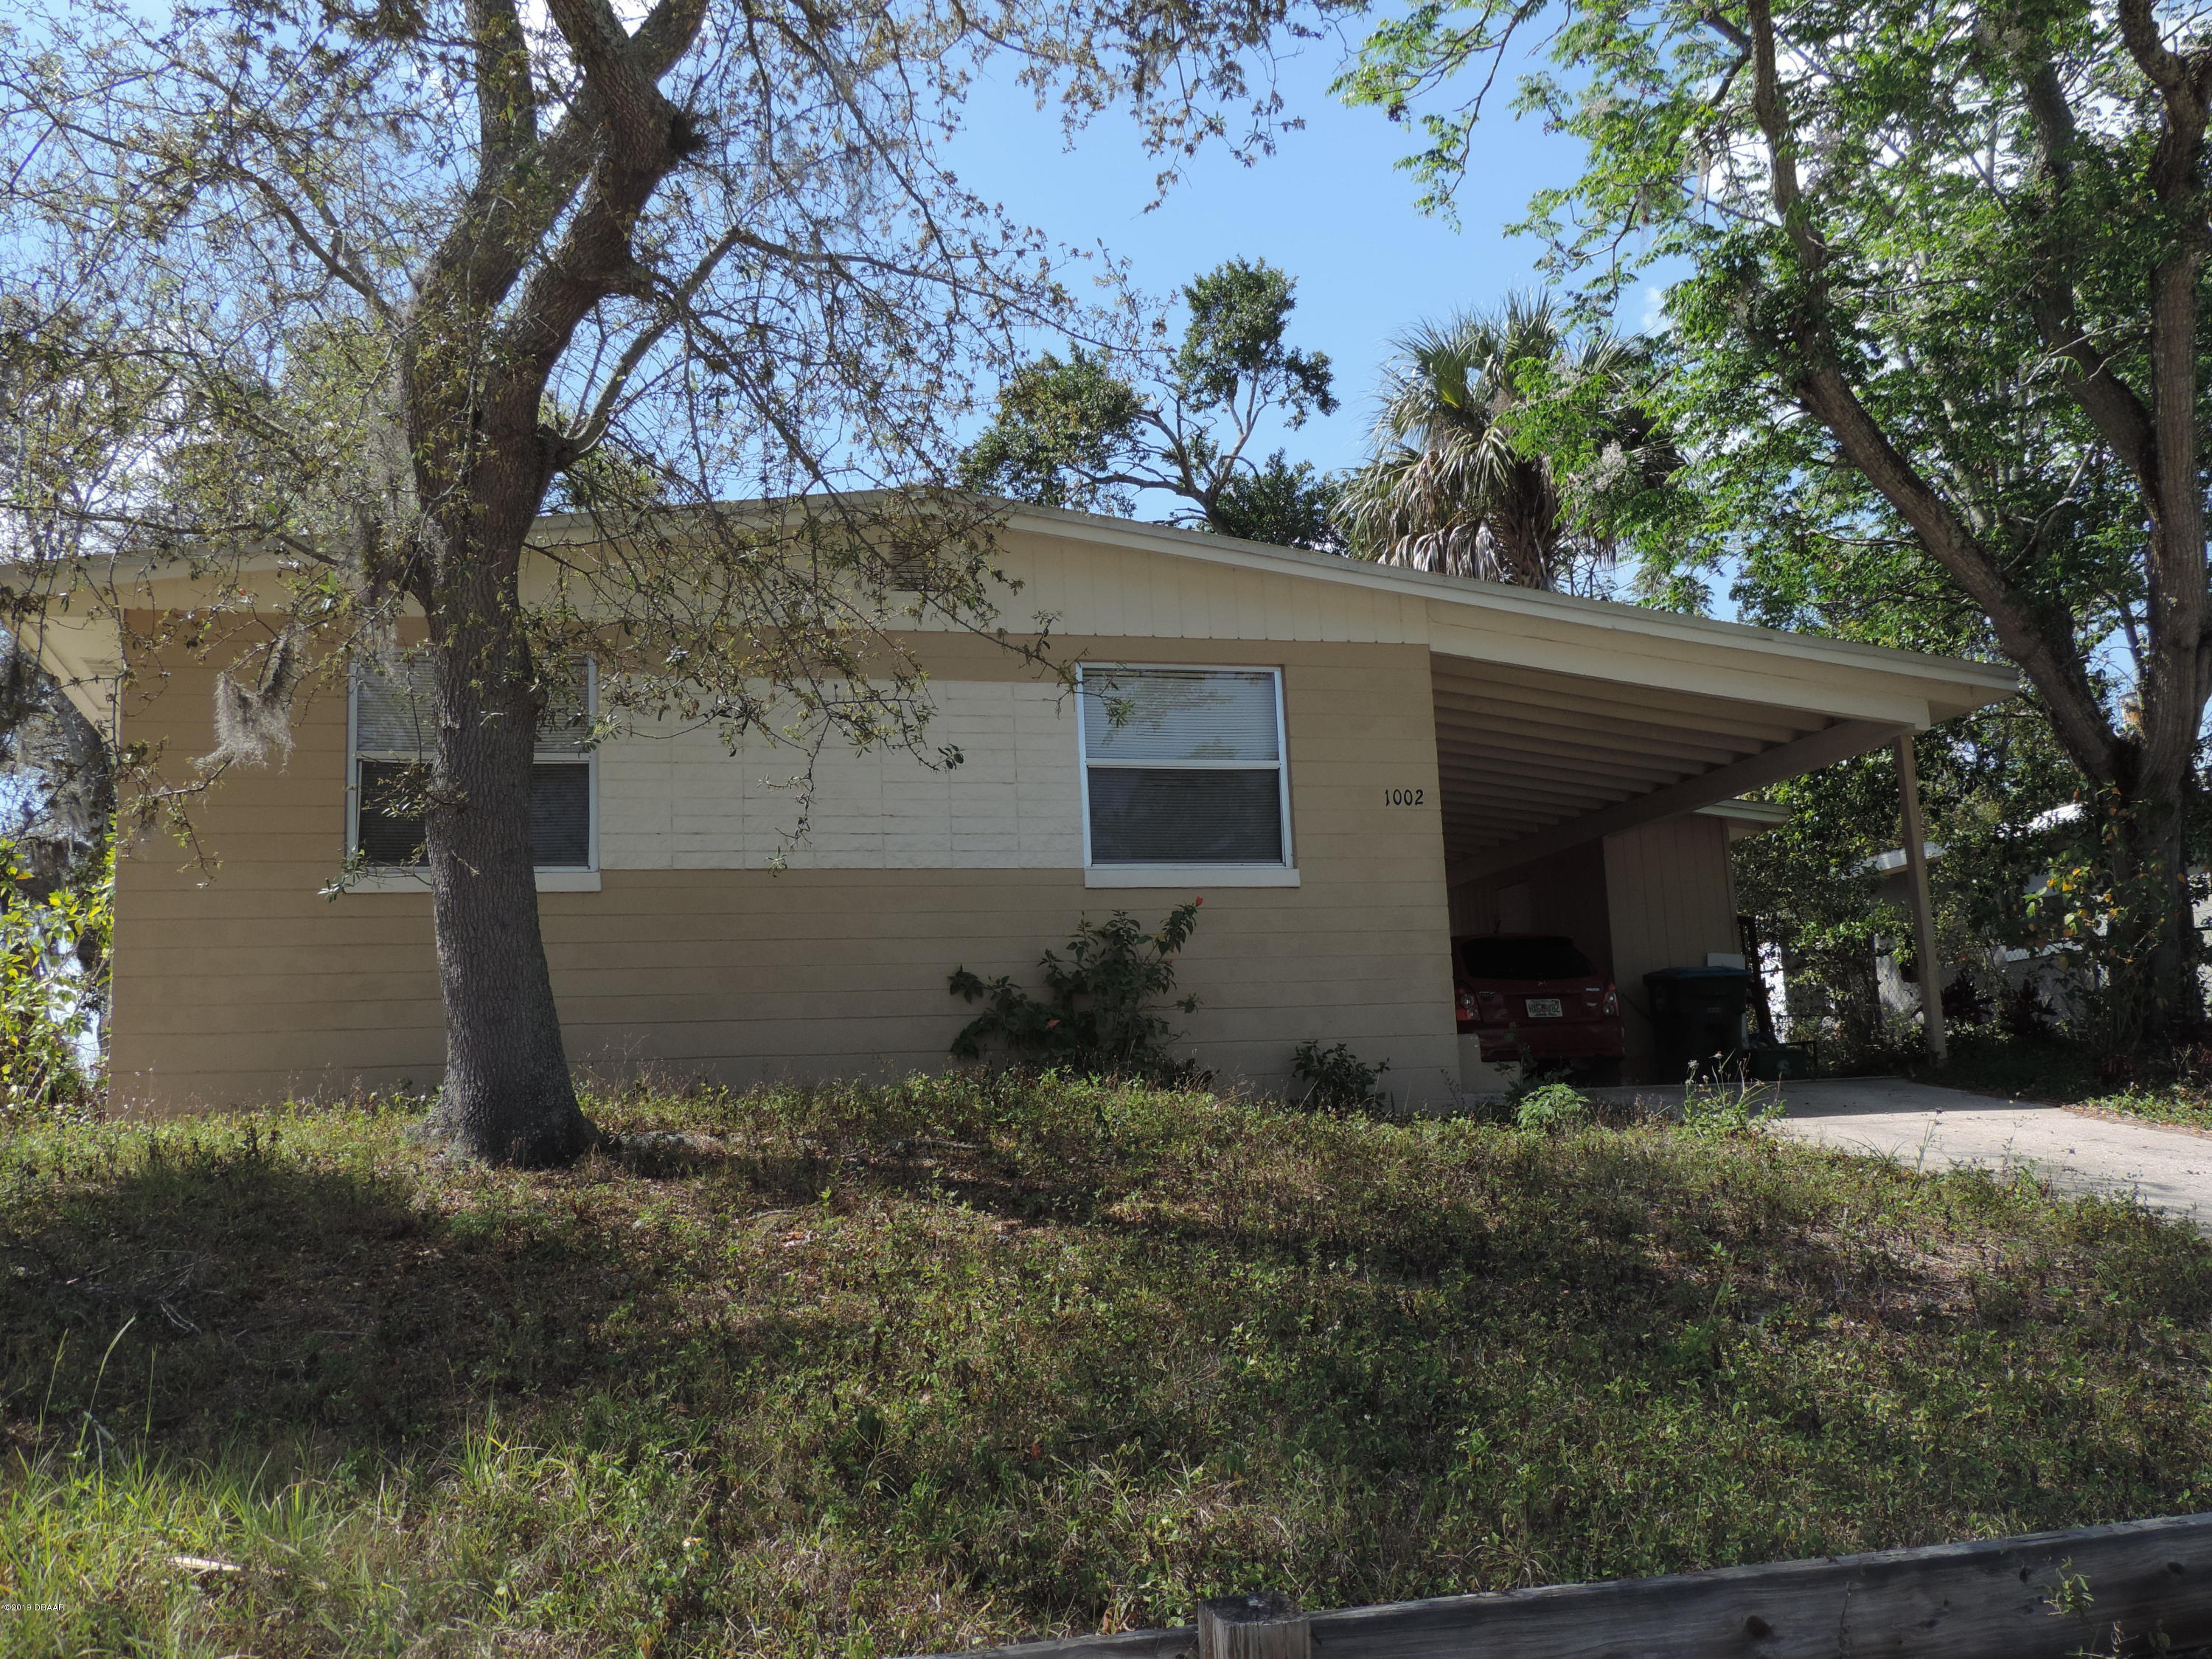 1002 Imperial Drive, Holly Hill, Florida